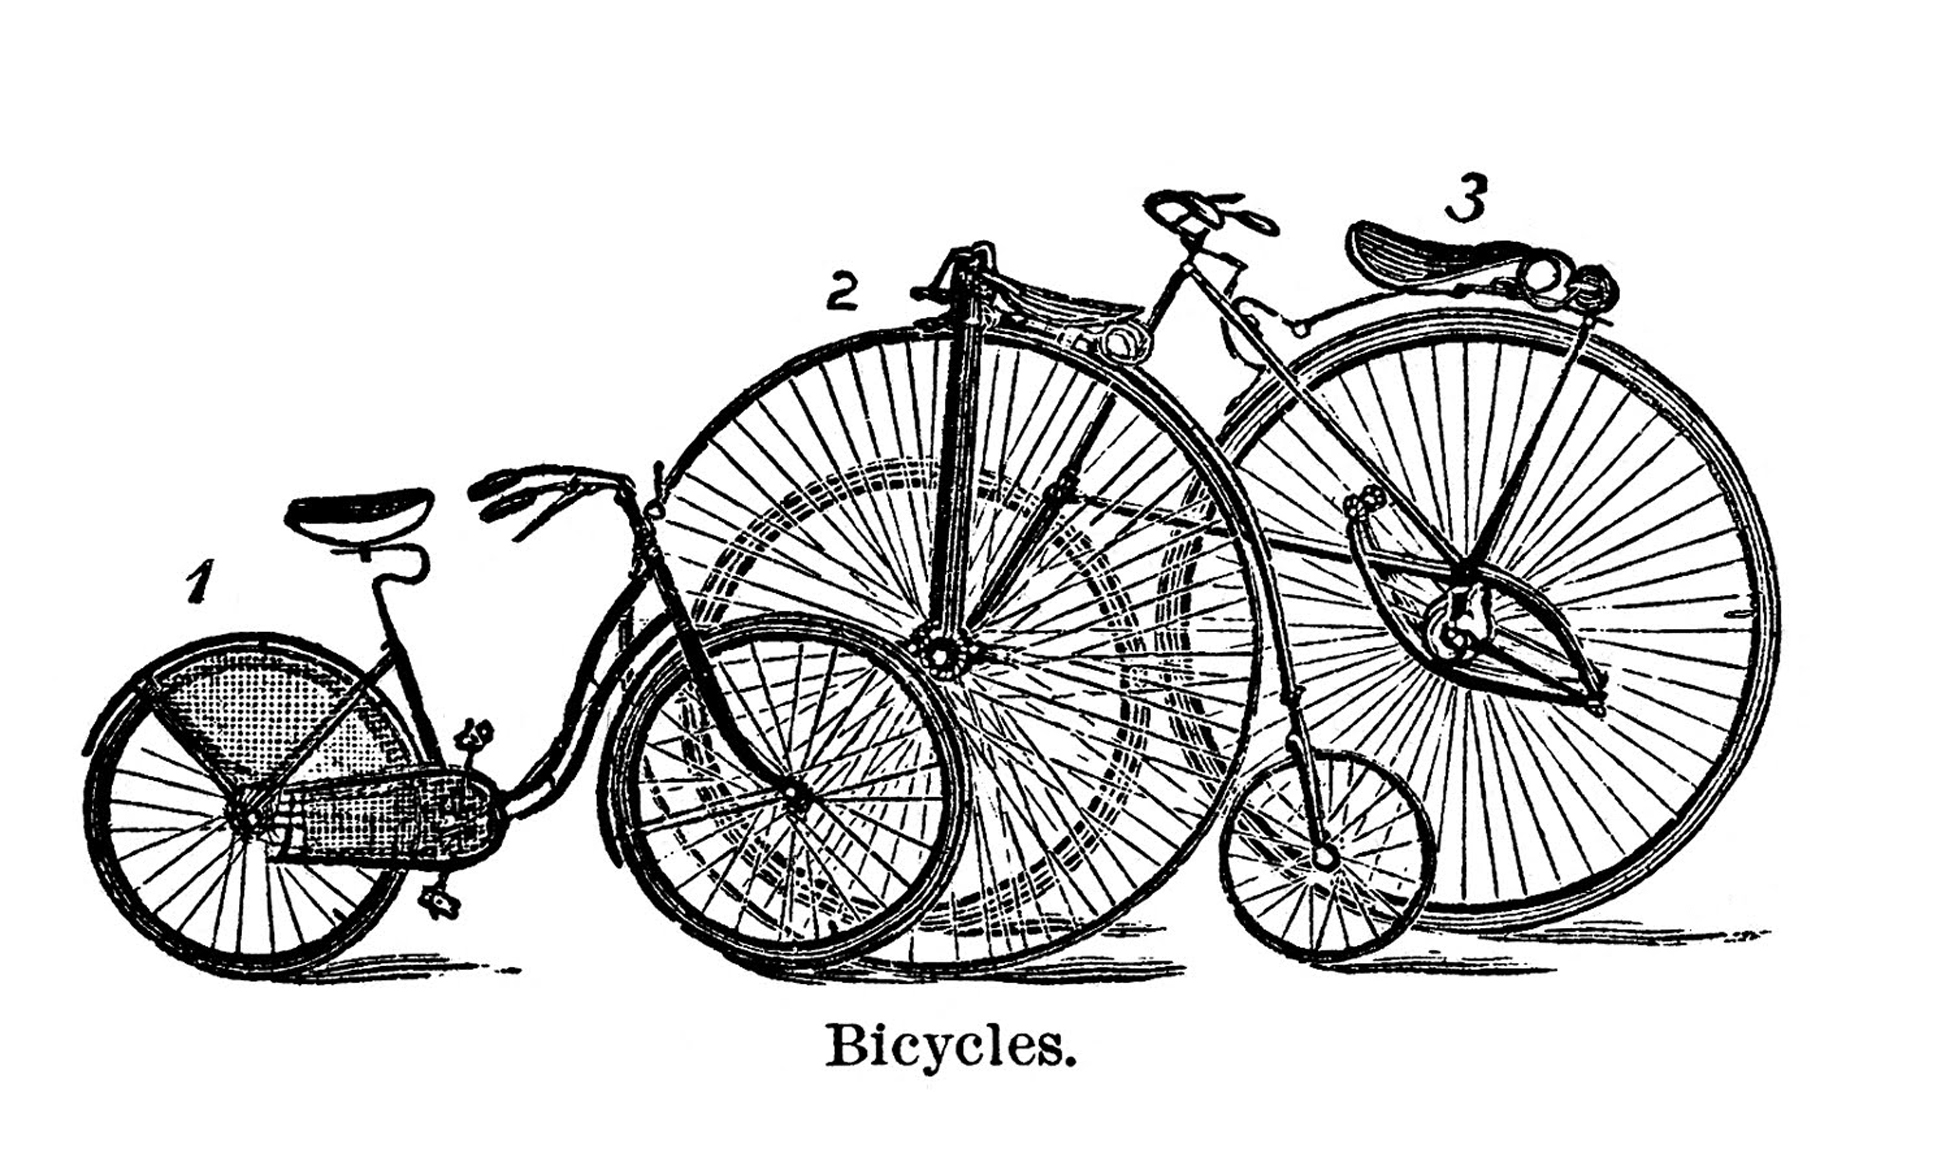 15 Bicycle Clip Art Images - The Graphics Fairy